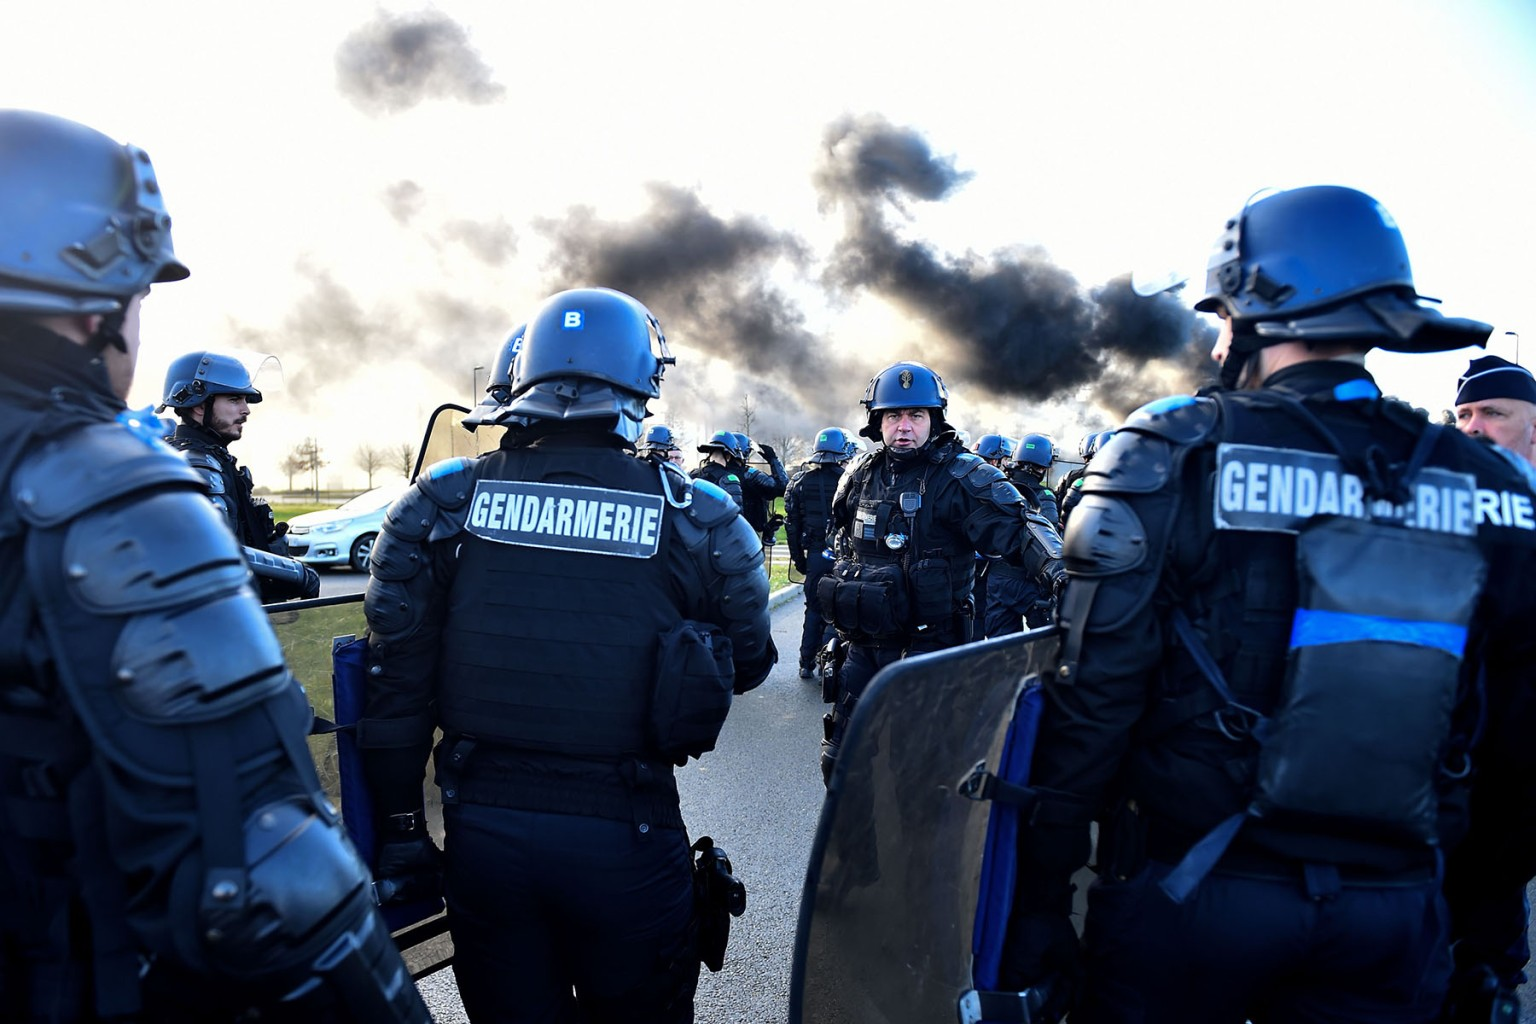 French gendarmes arrive for evacuation as prison guards block the entrance to the penitentiary center of Alencon, in Conde-sur-Sarthe, northwestern France, on March 7, two days after a prison inmate seriously wounded two guards in a knife attack before being detained in a police raid. JEAN-FRANCOIS MONIER/AFP/Getty Images